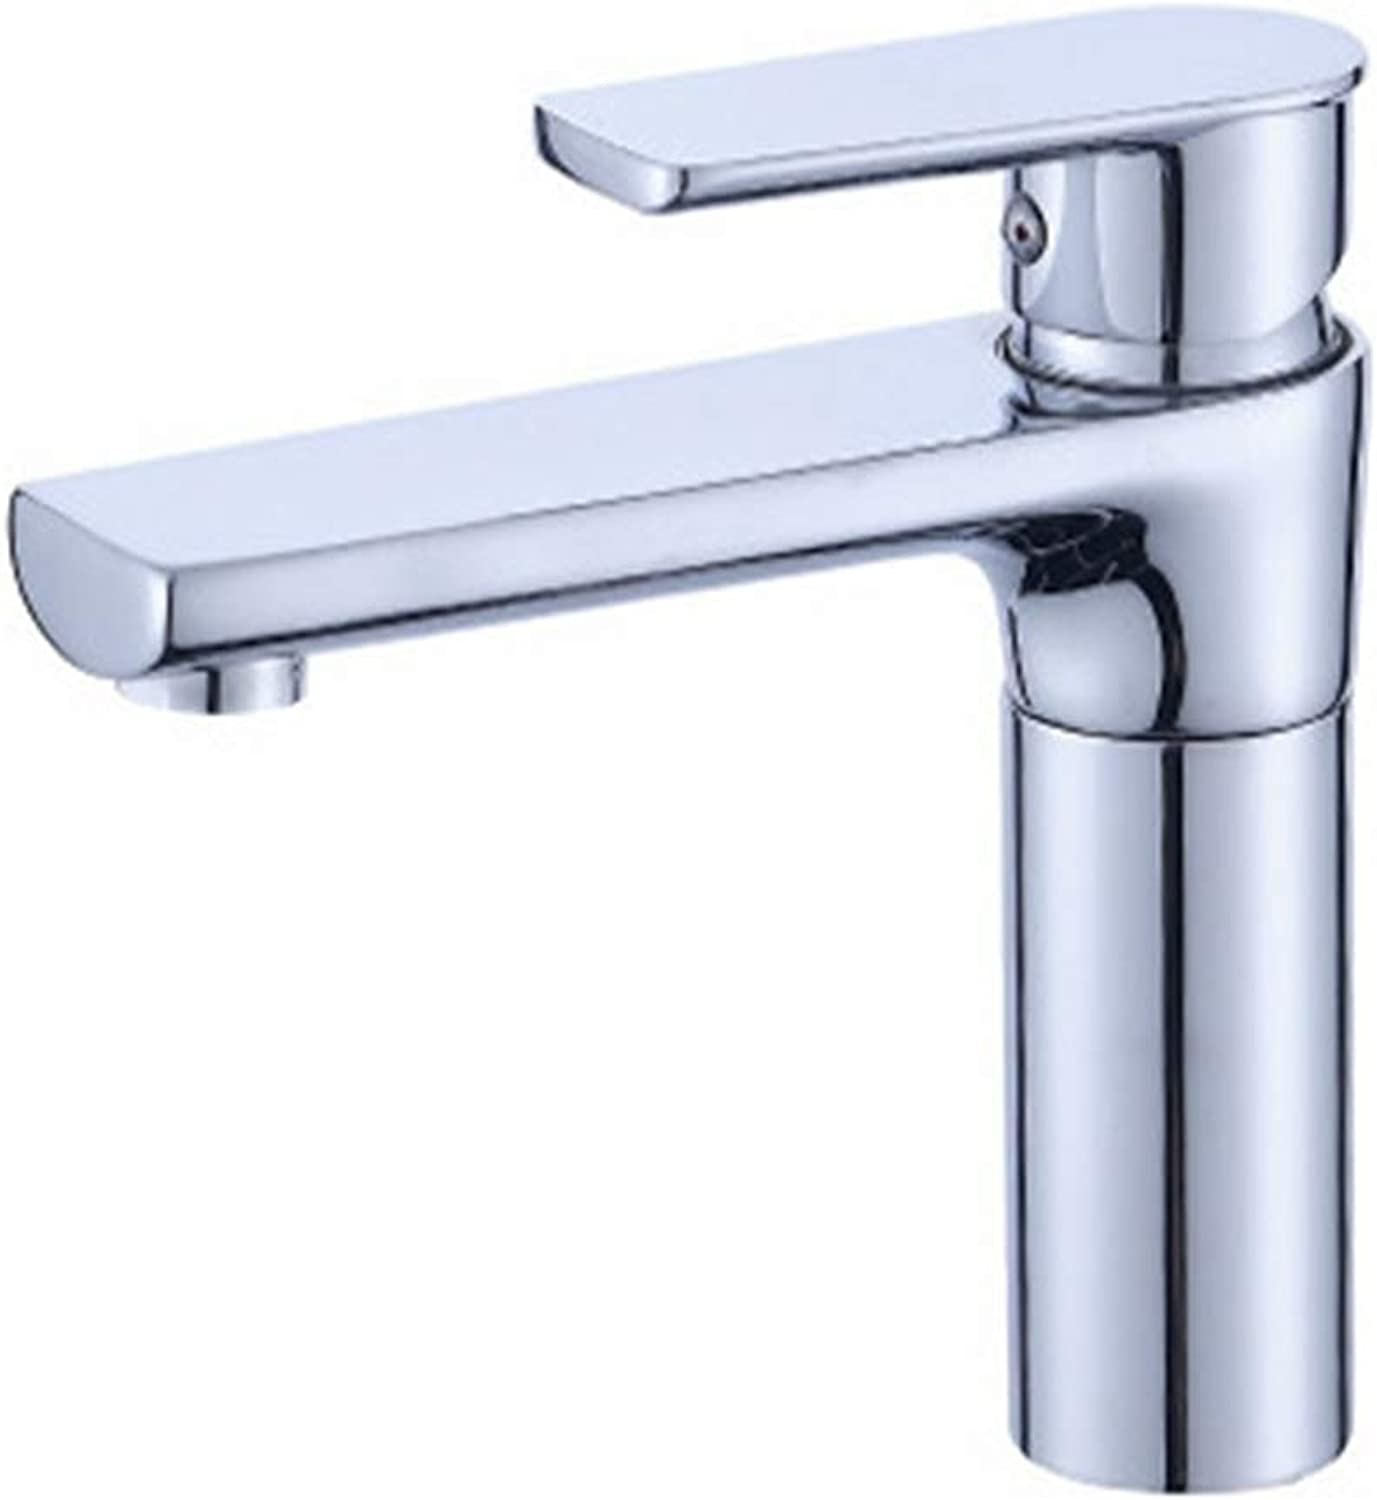 QMWY Basin Tap,Bathroom Upgrade Kitchen Sink Faucet Can Be redated